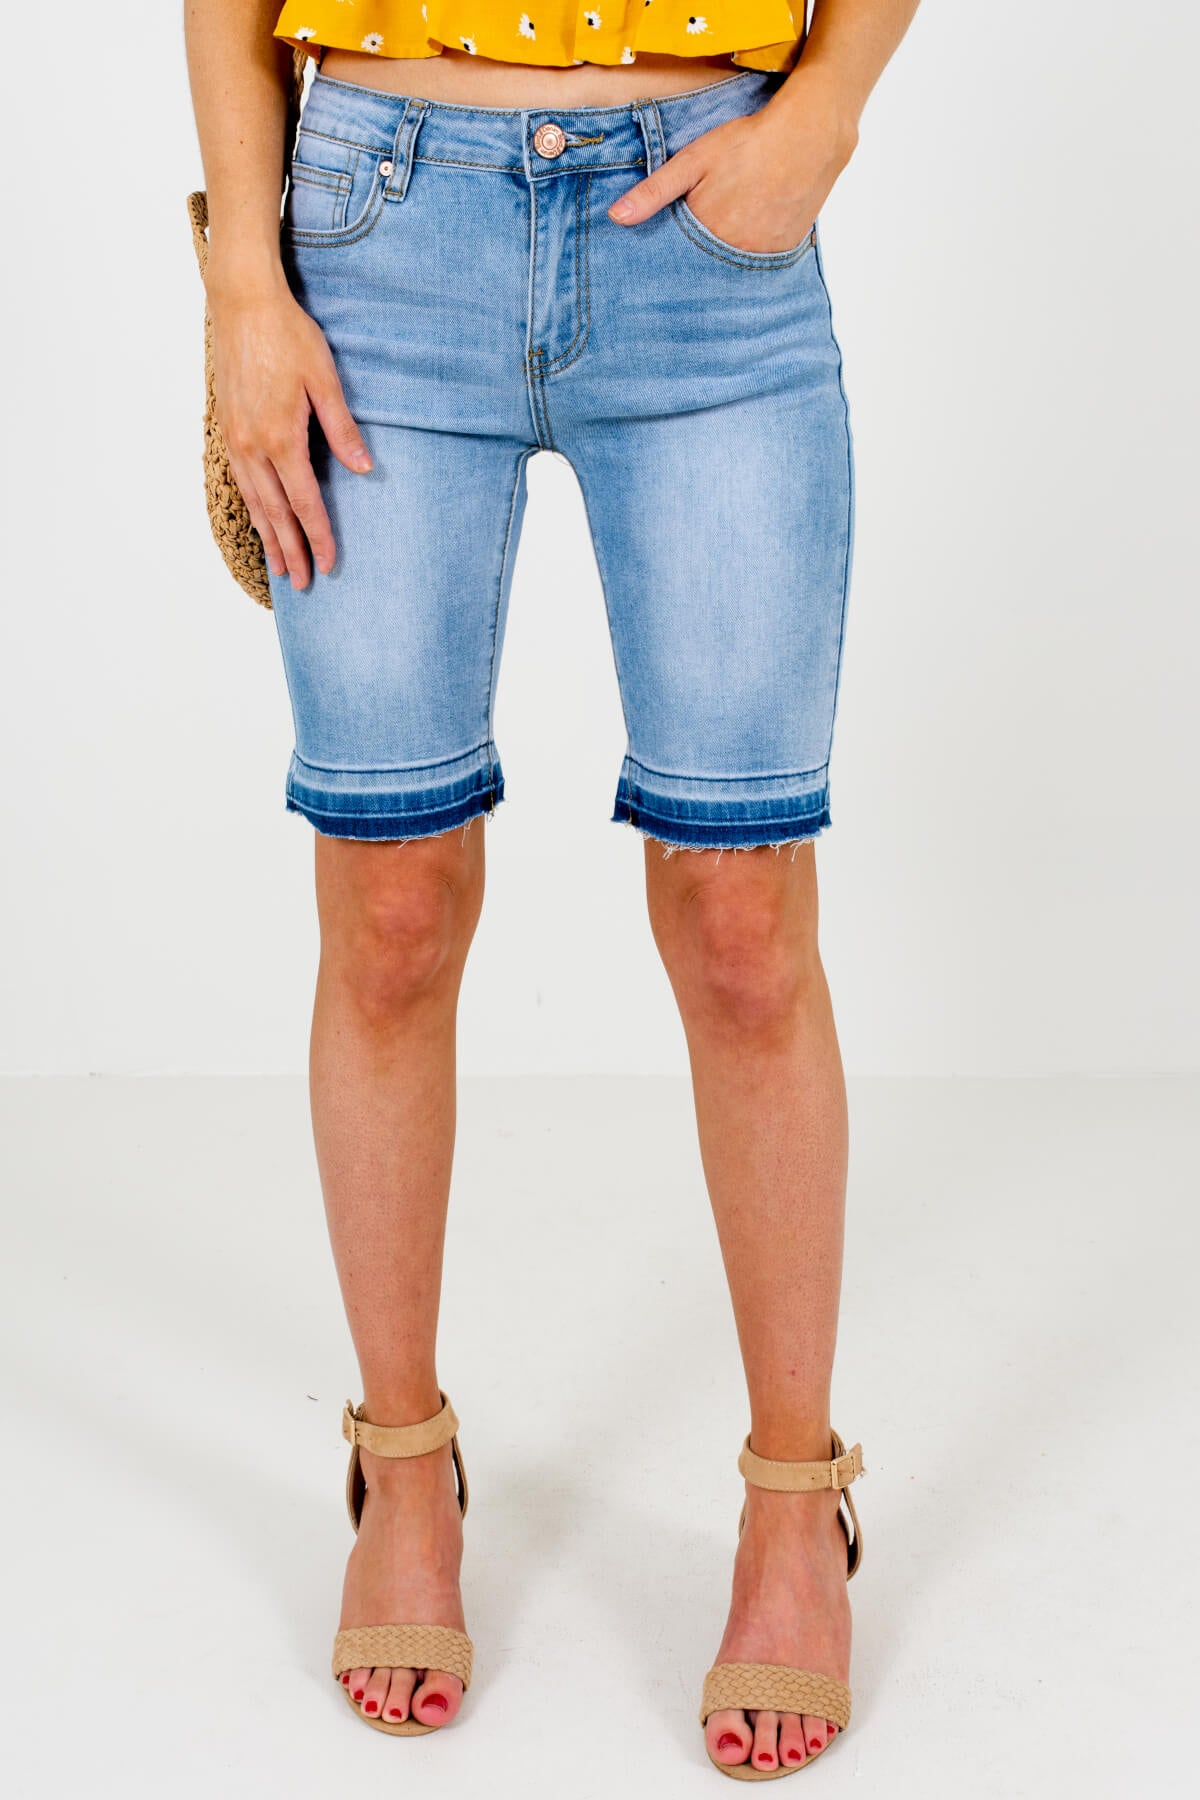 Medium Wash Blue Denim Bermuda Style Boutique Shorts for Women